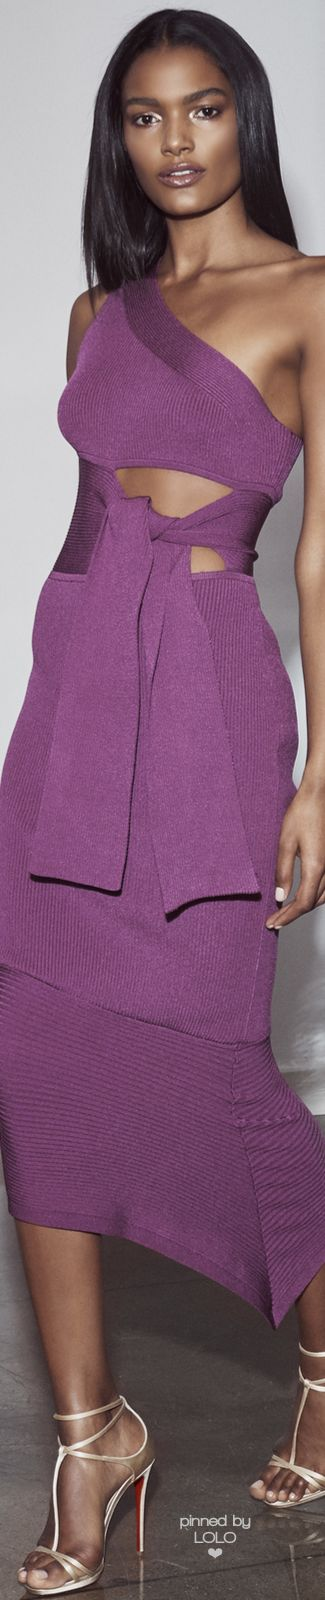 CUSHNIE ET OCHS PRE-FALL 2016 |  women fashion outfit clothing style apparel @roressclothes closet ideas